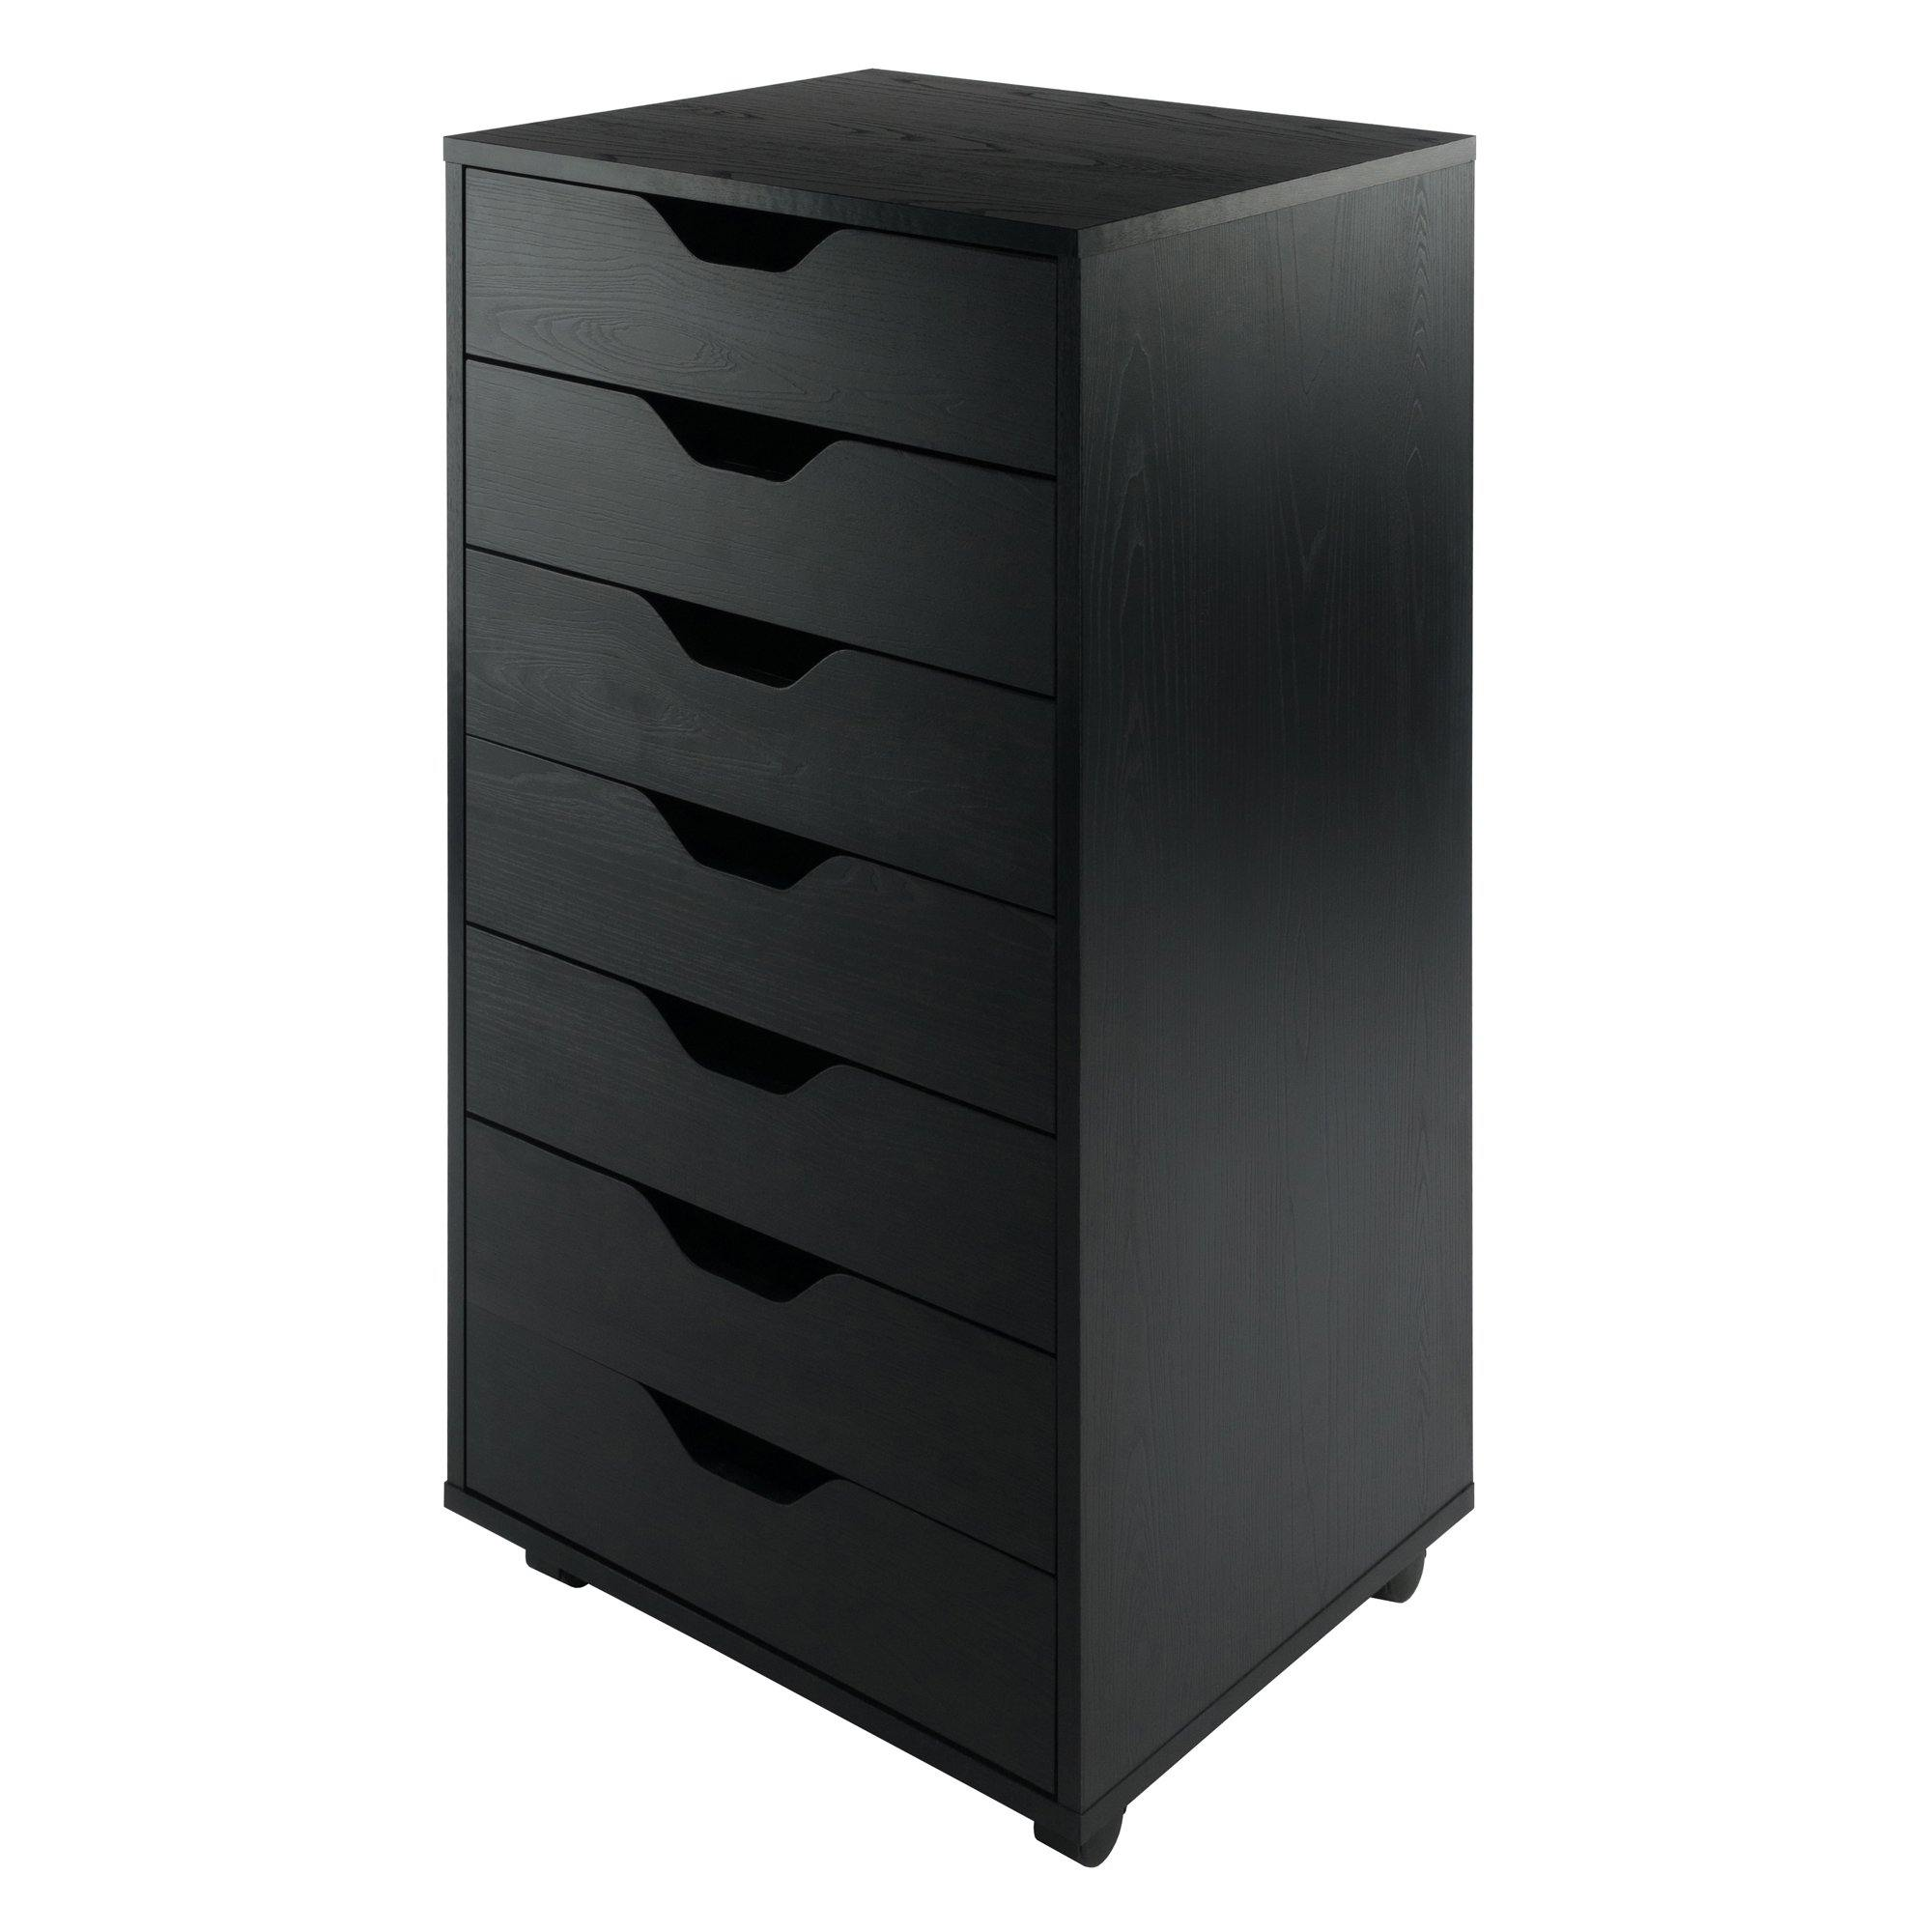 Halifax 7-Drawer Mobile Cabinet, Black - My USA Furniture